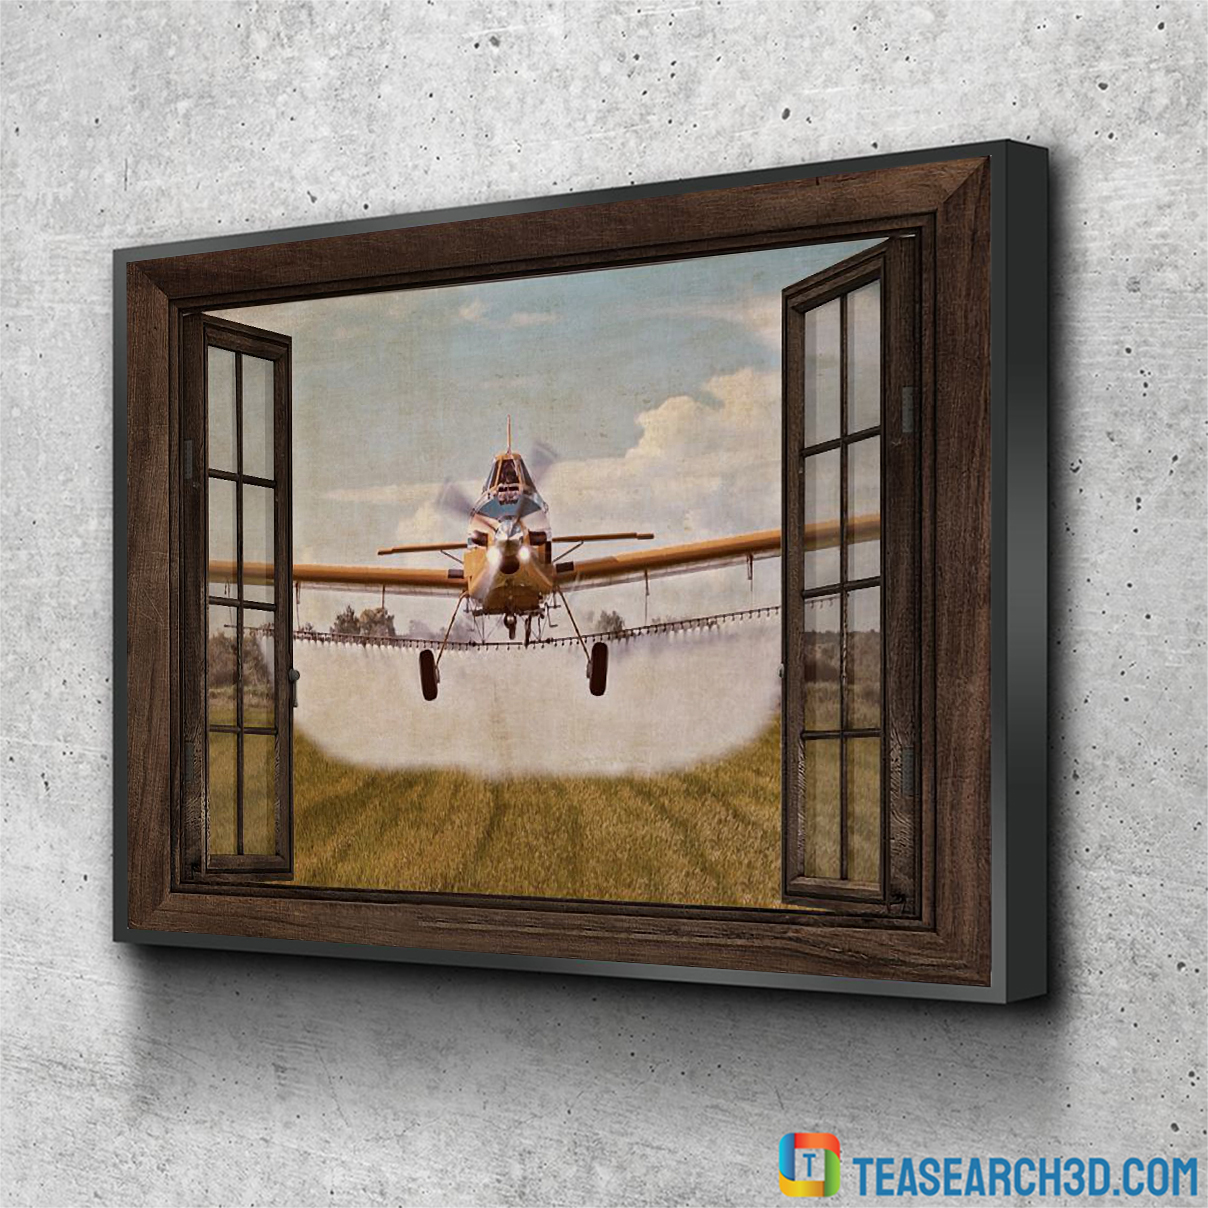 Agricultural aircraft window view poster A2